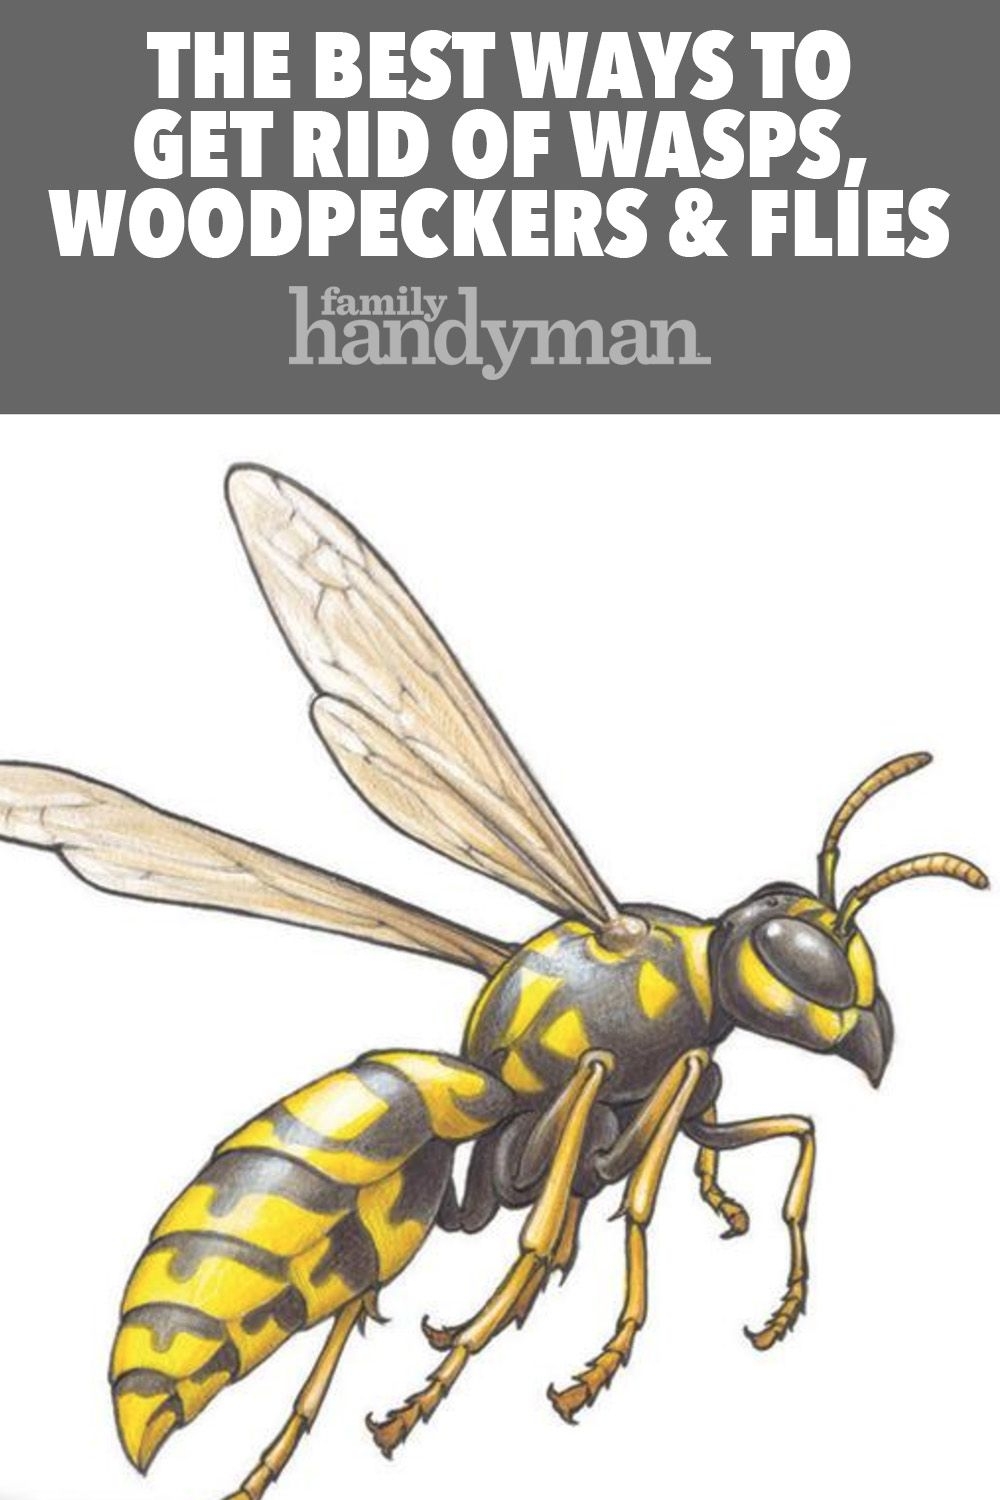 Get rid of wasps woodpeckers and flies get rid of wasps